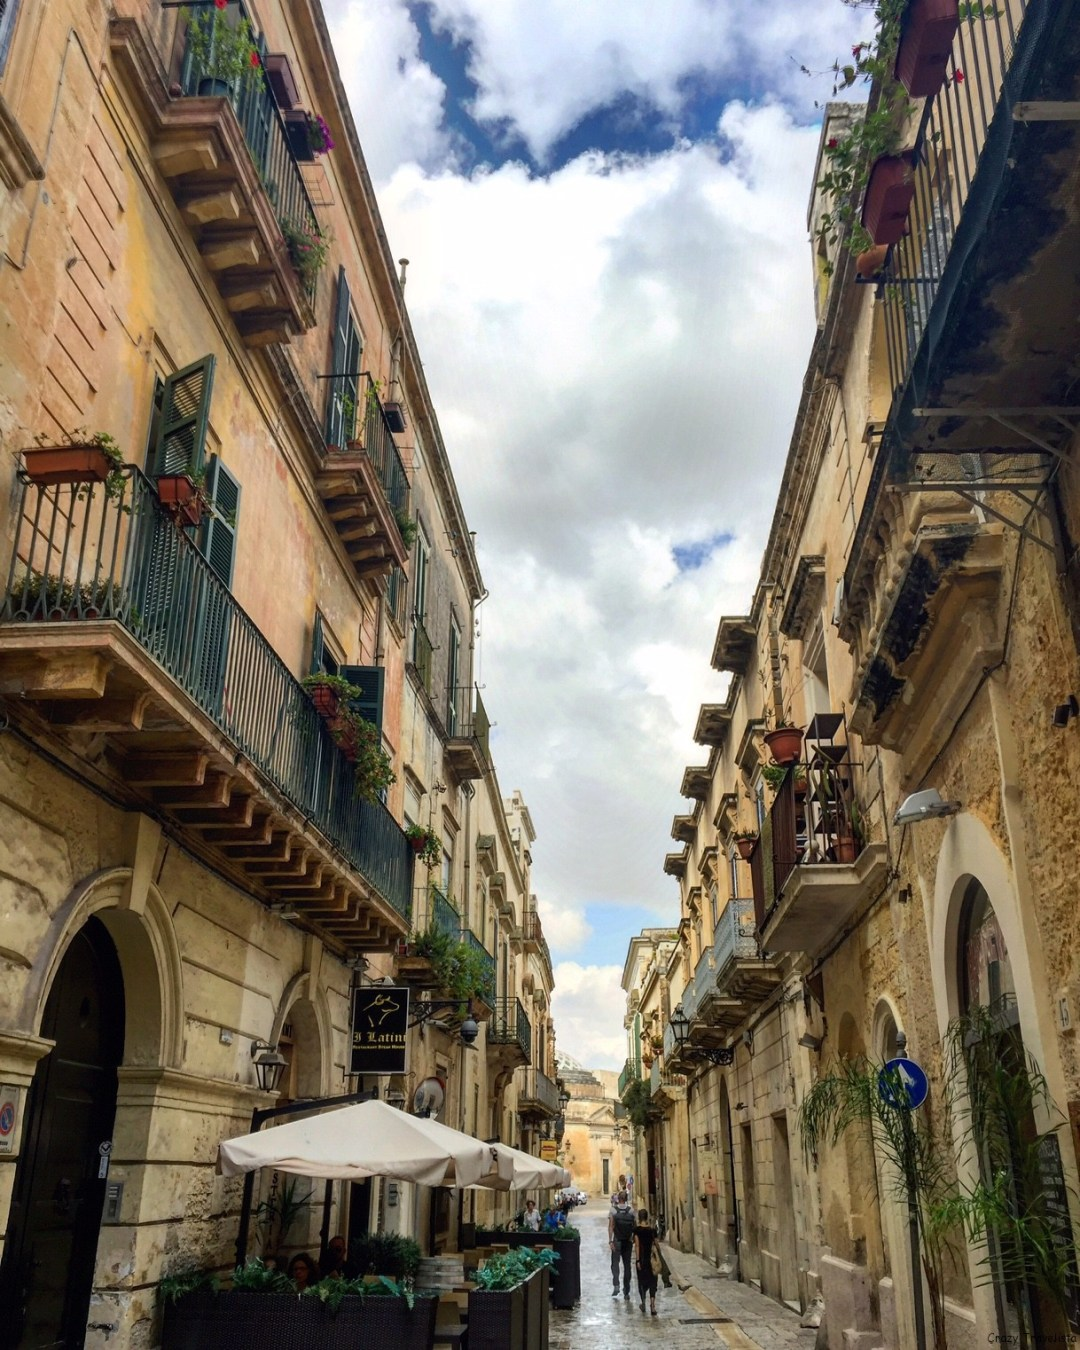 Streets of Lecce